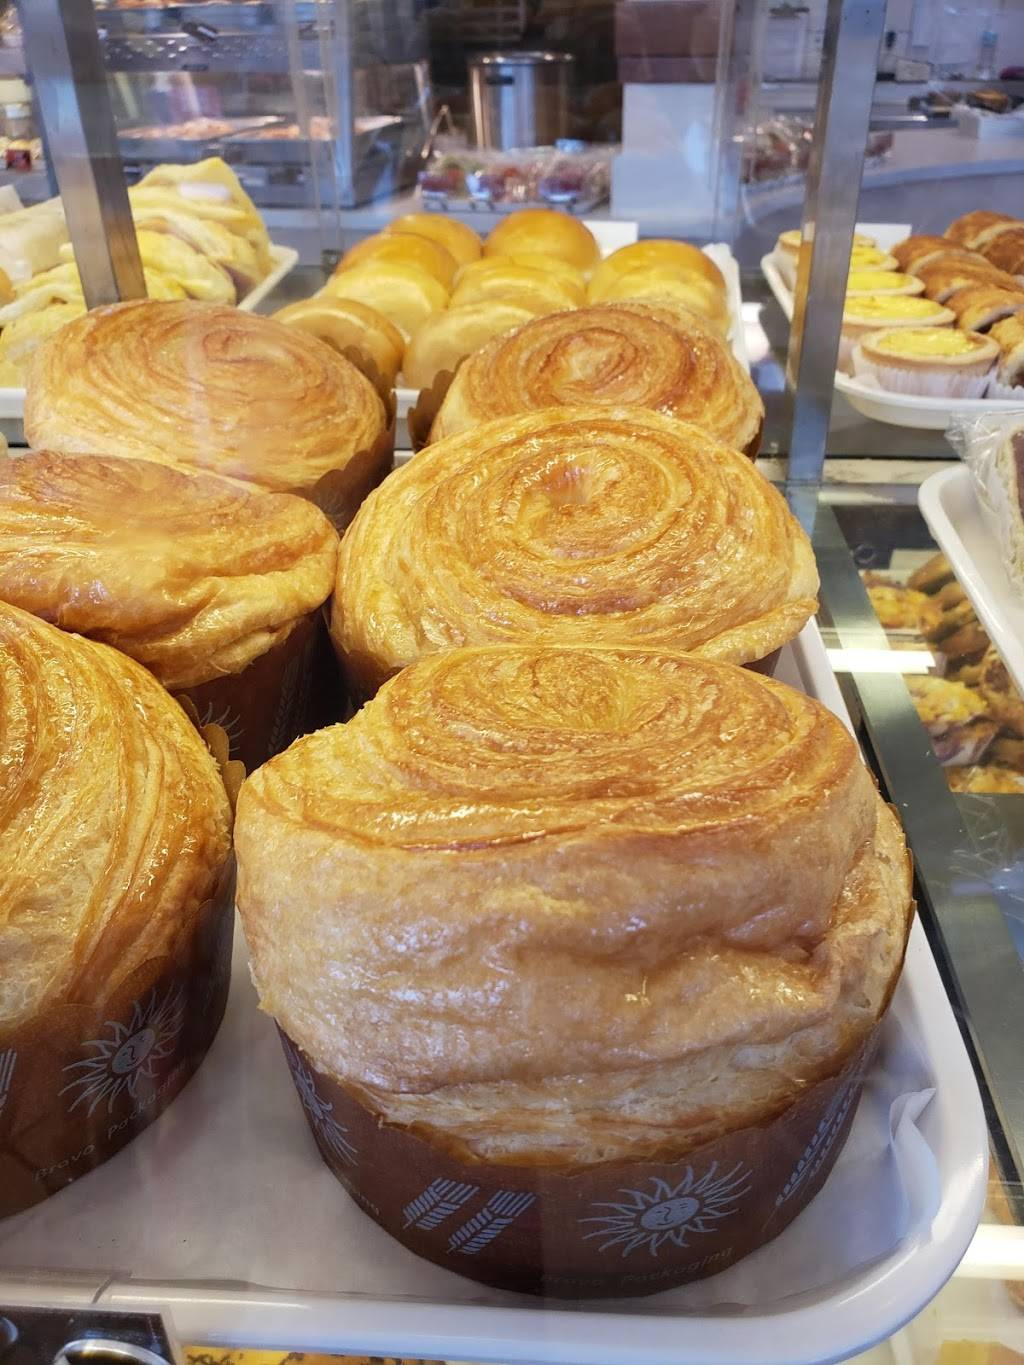 T C Pastry | bakery | 2222 Irving St, San Francisco, CA 94122, USA | 4157531133 OR +1 415-753-1133